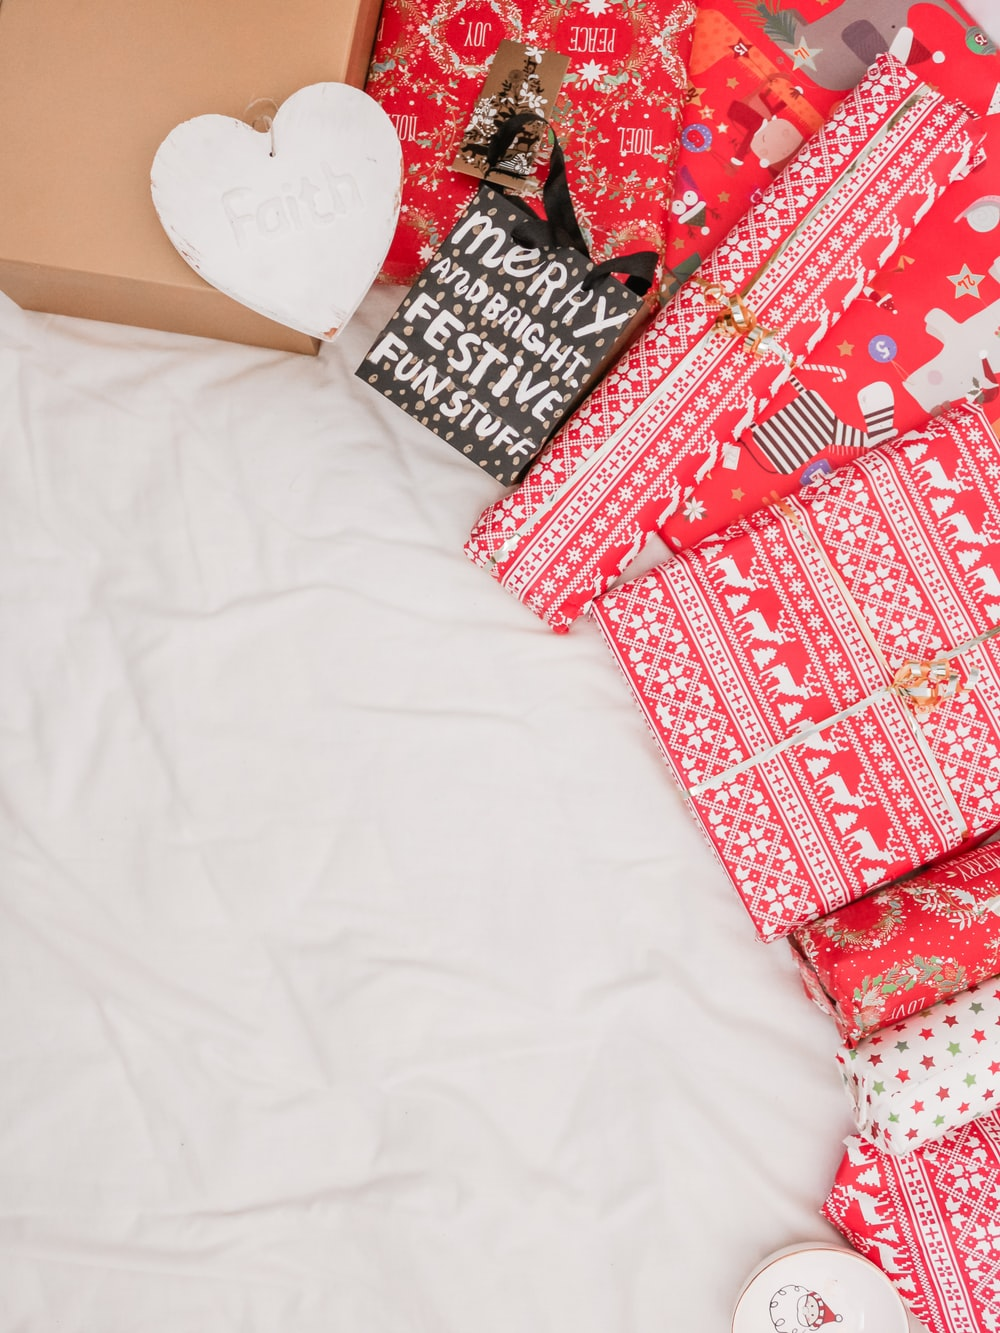 red and black packed presents on white textile